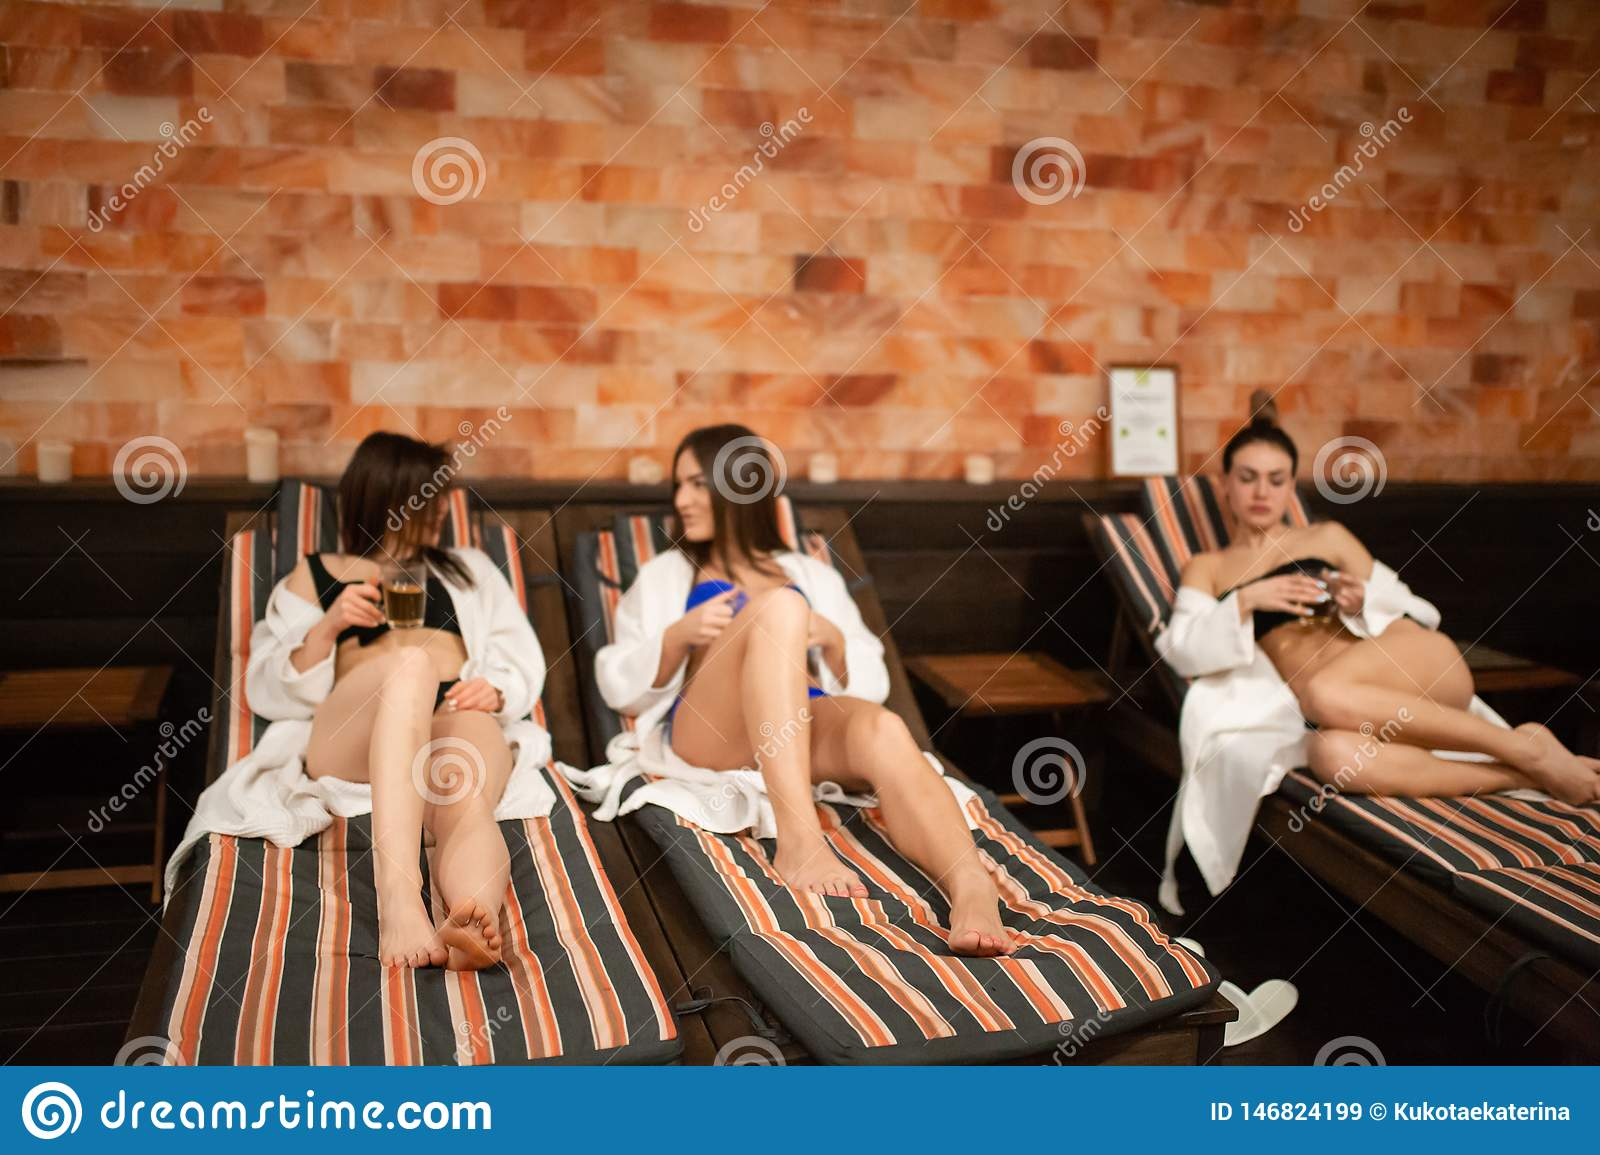 A group of young girls relaxing on a wooden deck in the sauna. Having fun in the female company